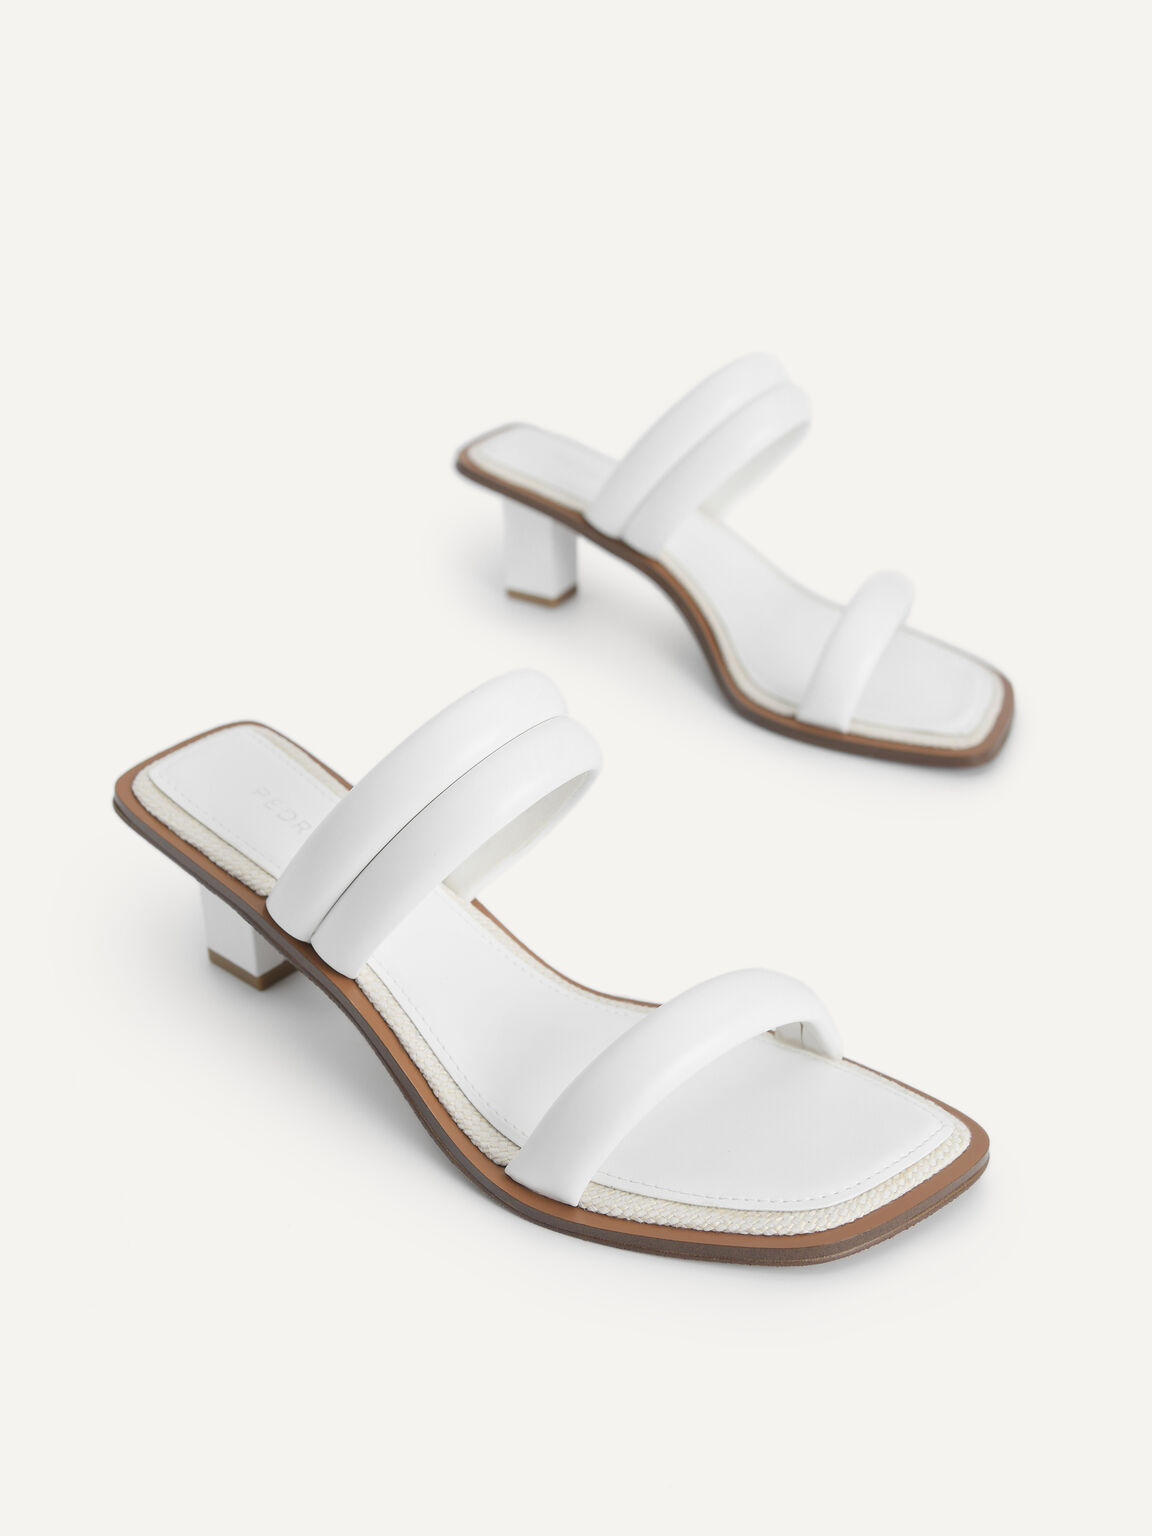 Double Strap Heeled Sandals, White, hi-res